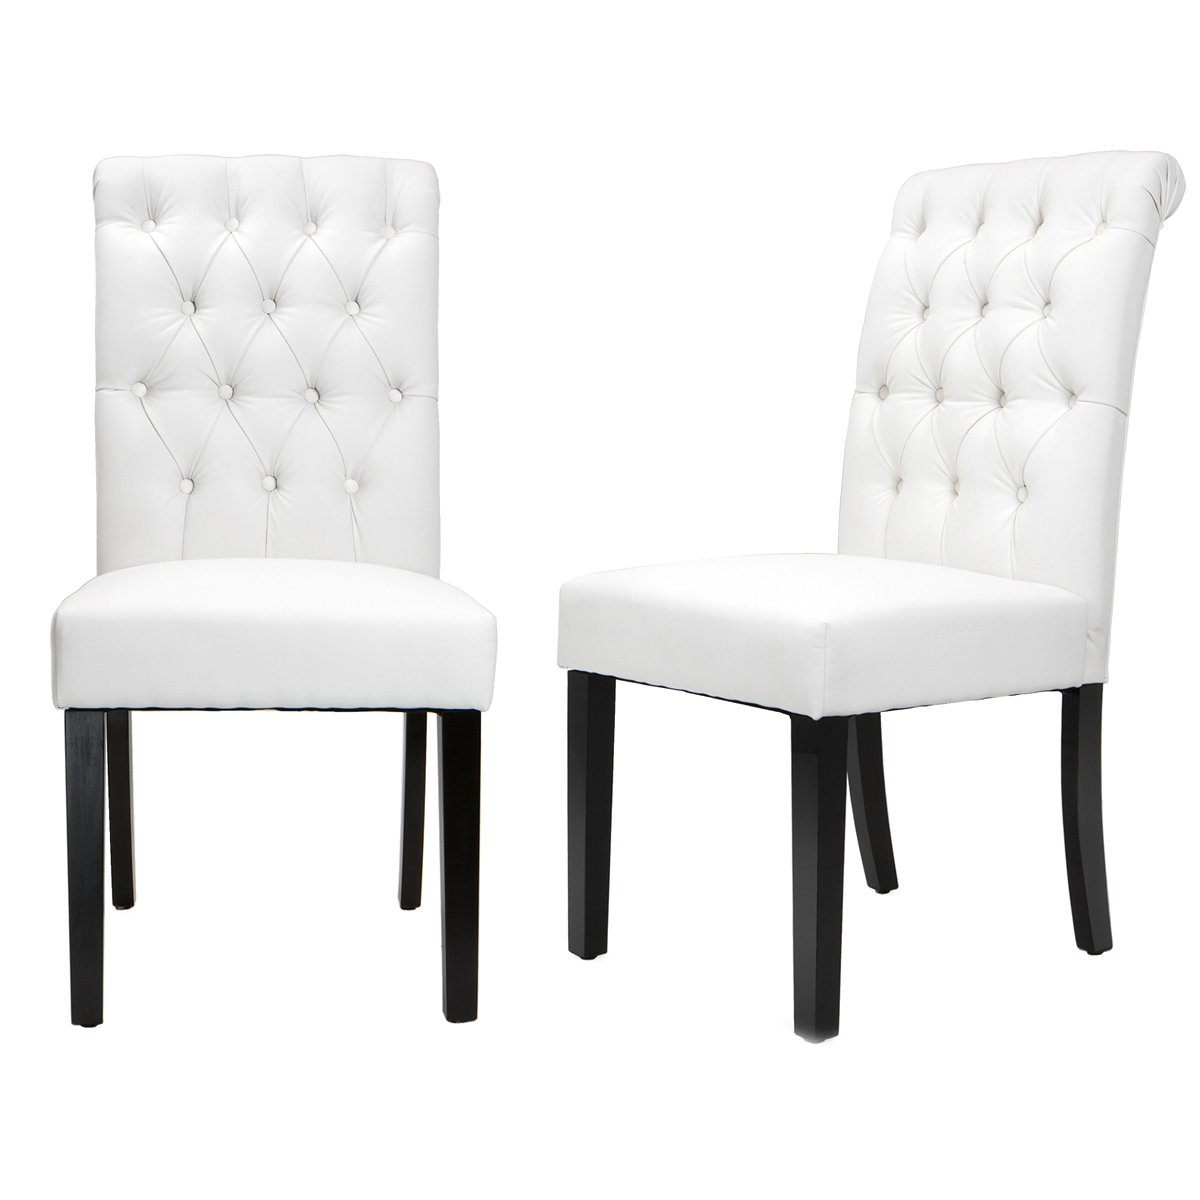 Barton Padded Leather Dining Chair, Set of 2 White